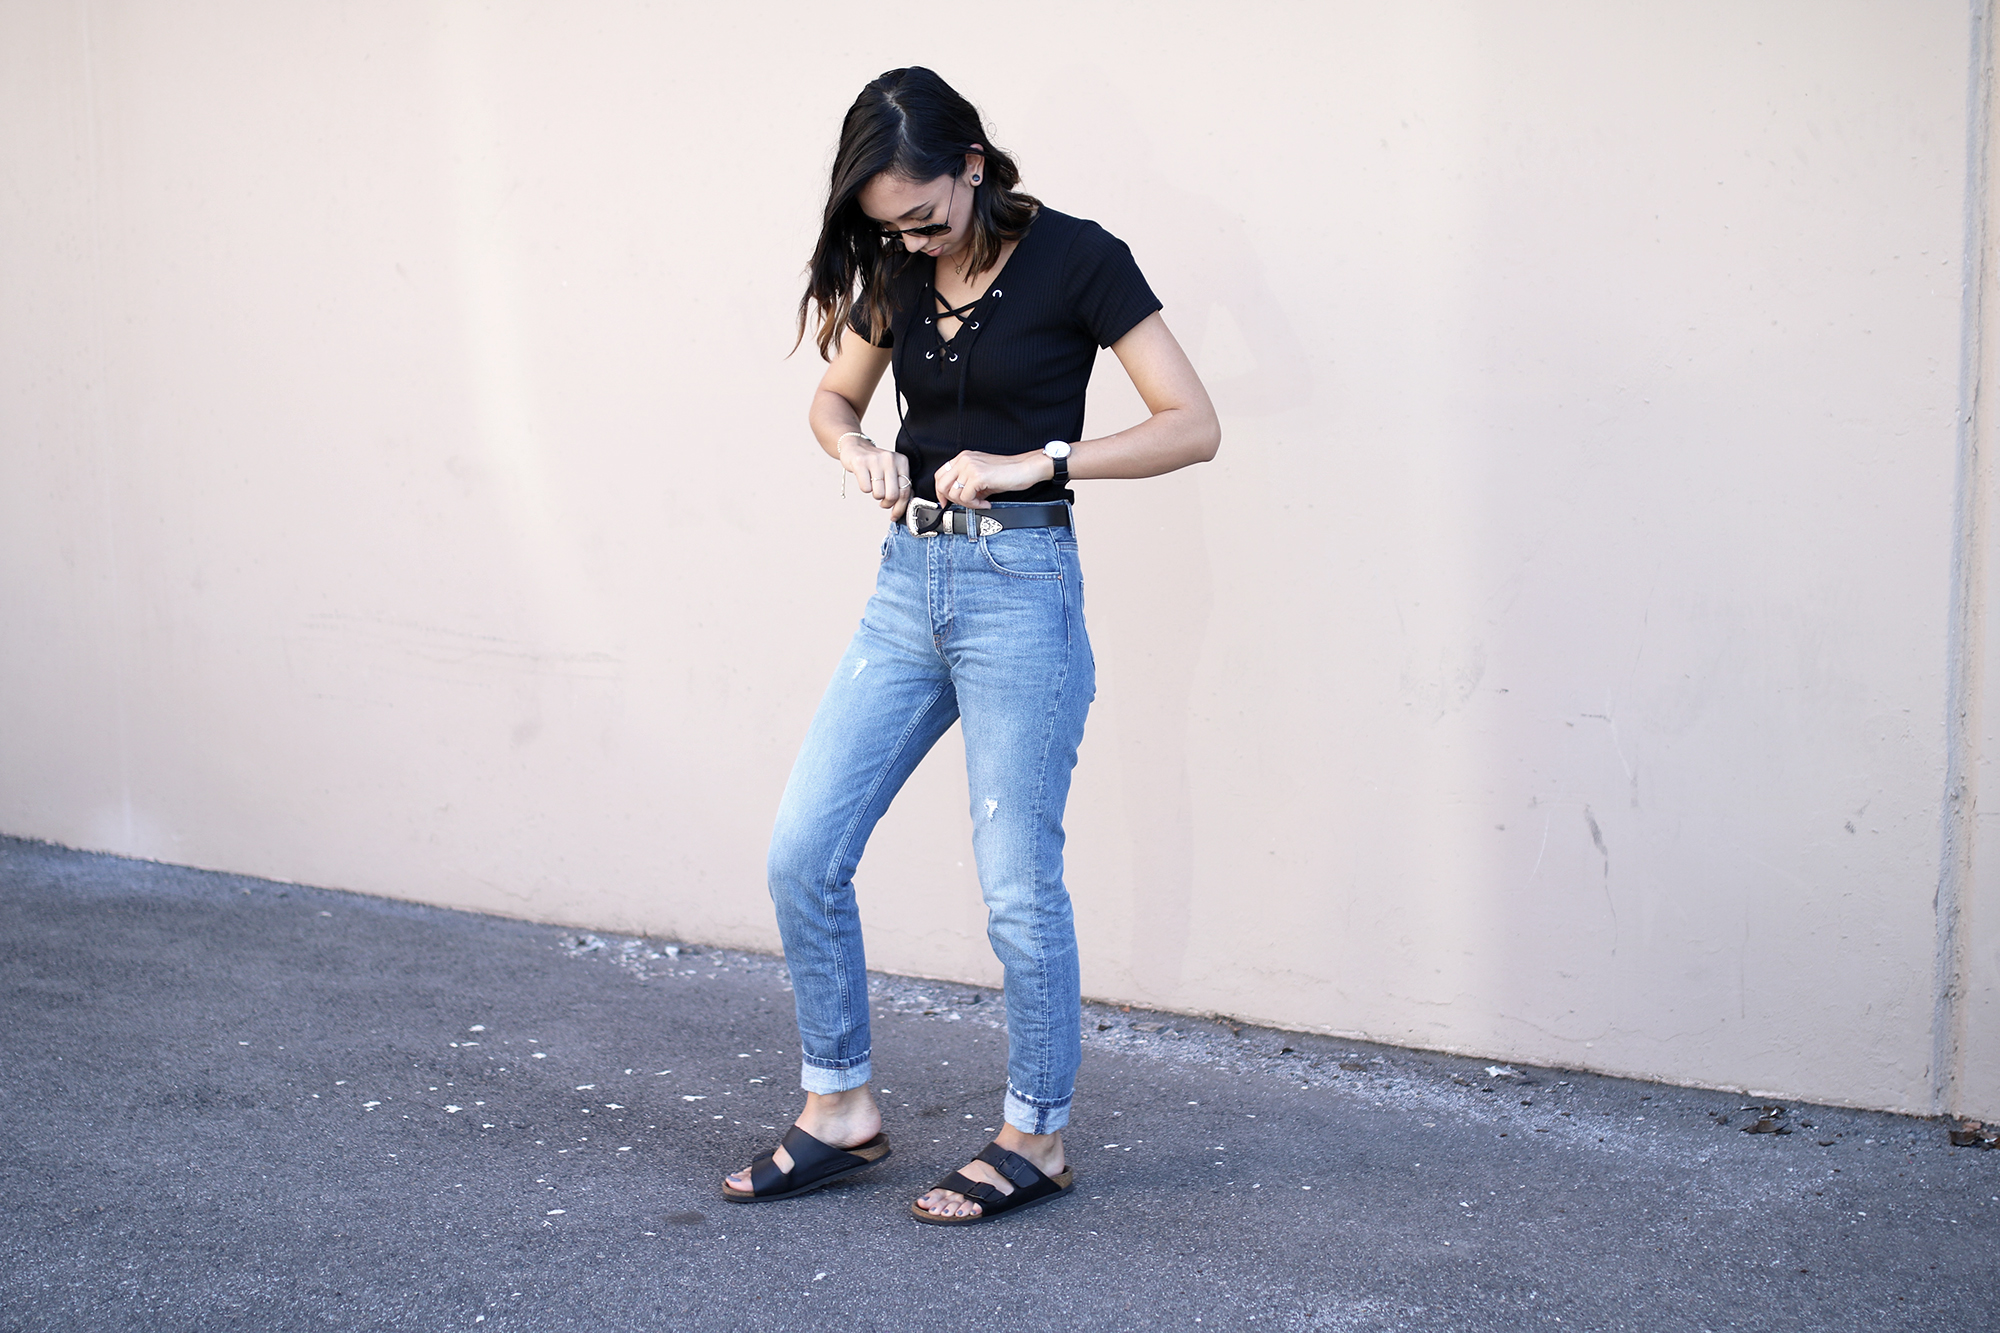 Lace_Up_Top_Zara3